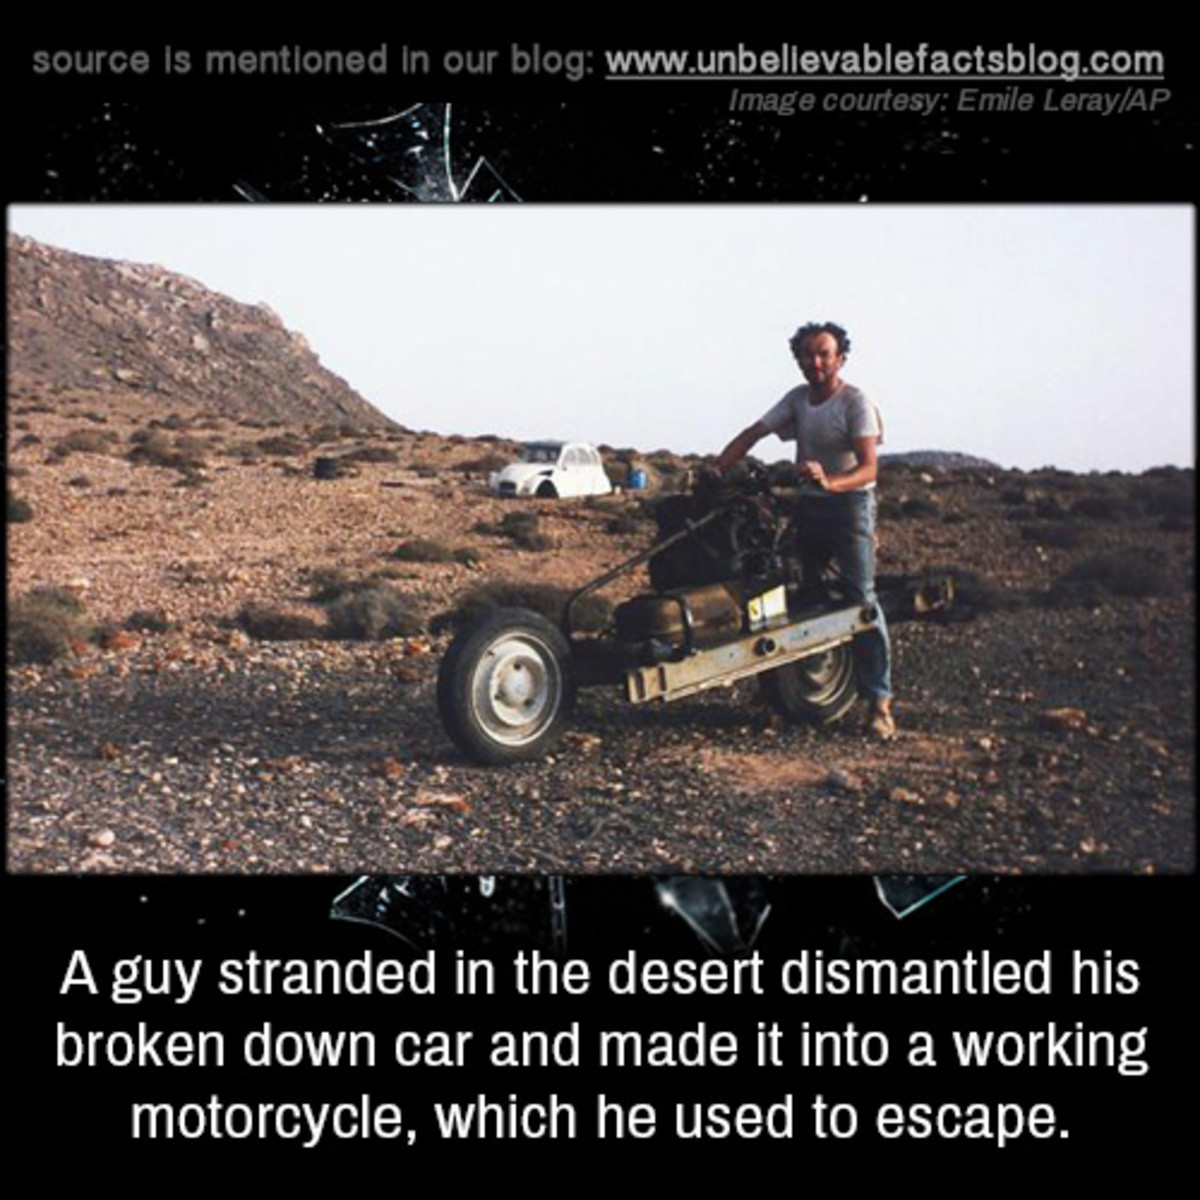 resigned Locust. .. If anyone goes looking into this let me defend a question you may have. Sure, he only had to go 20 miles; That's 20 desert miles though.